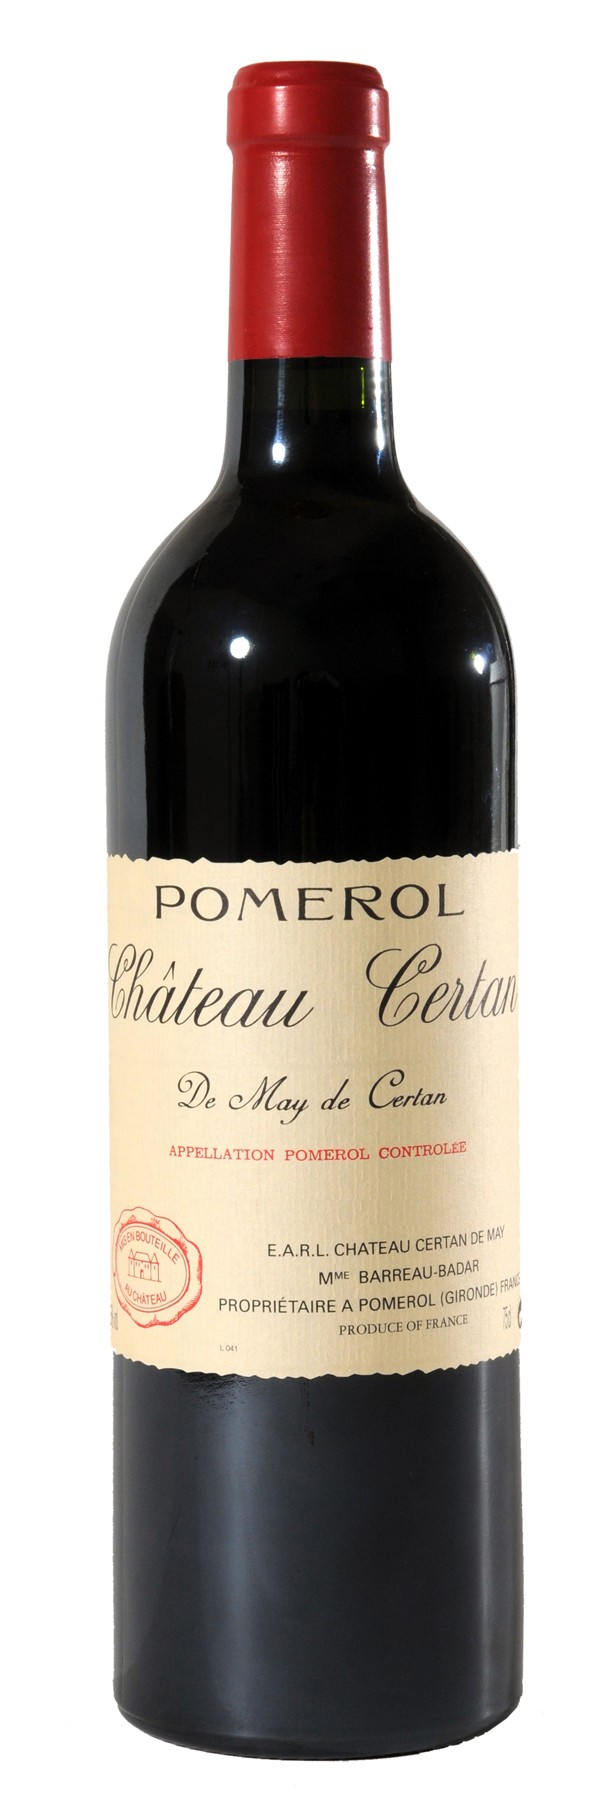 Chateau Certan de May - Pomerol, 2006